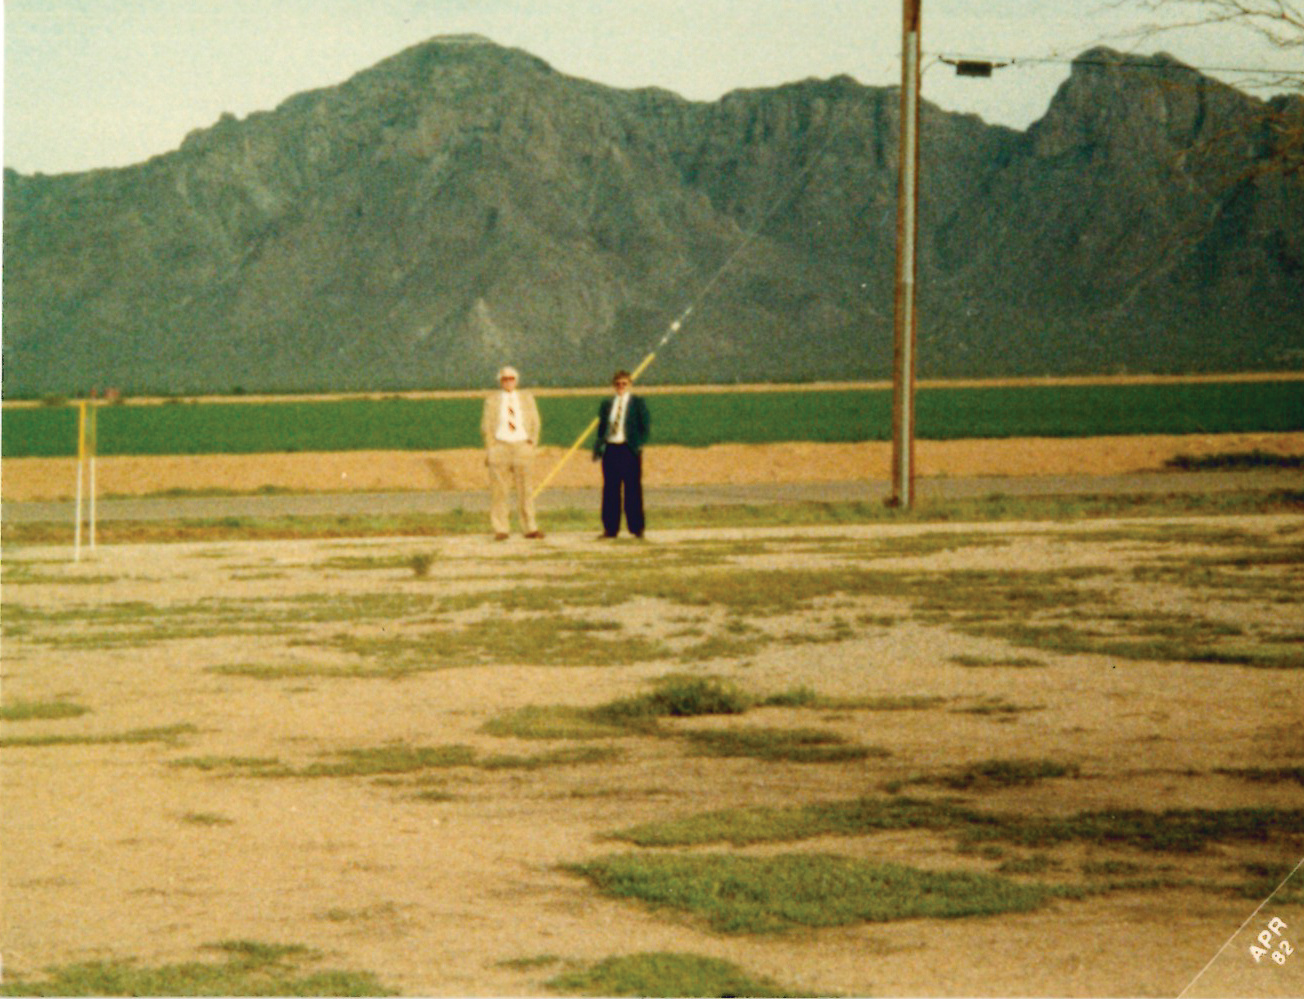 1982: Morry and Larry Carlson stand on the Arizona property and seek God's guidance for the future of the newly acquired ministry location